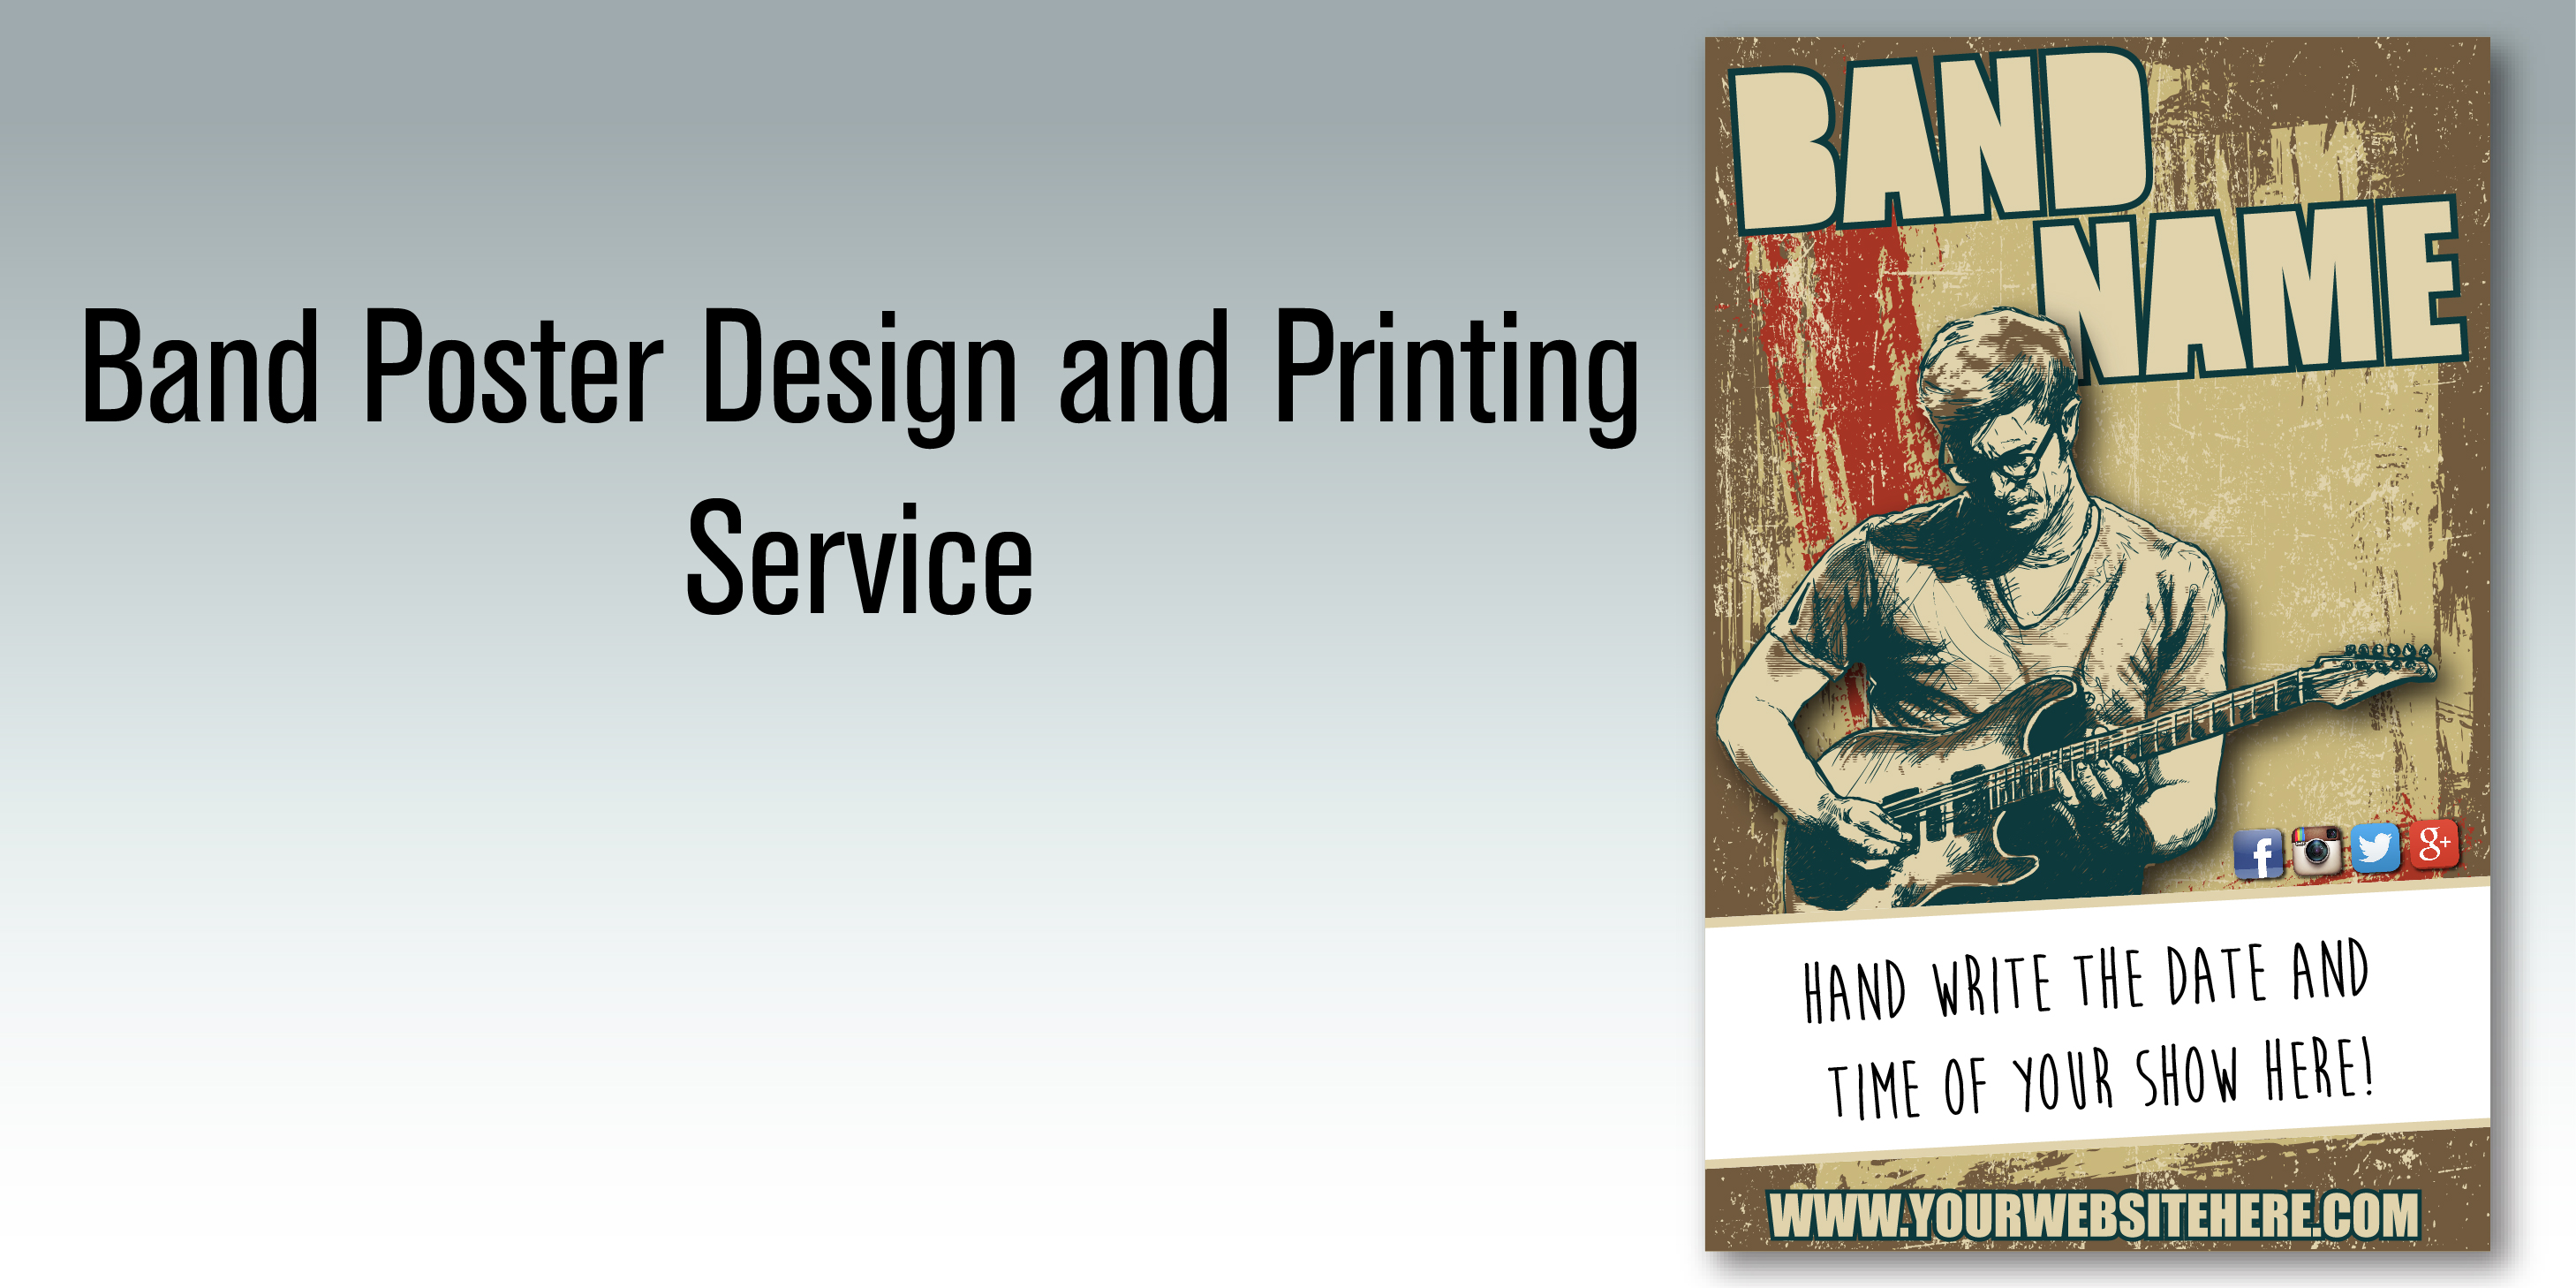 Poster design and printing - Band Poster Design And Printing Service